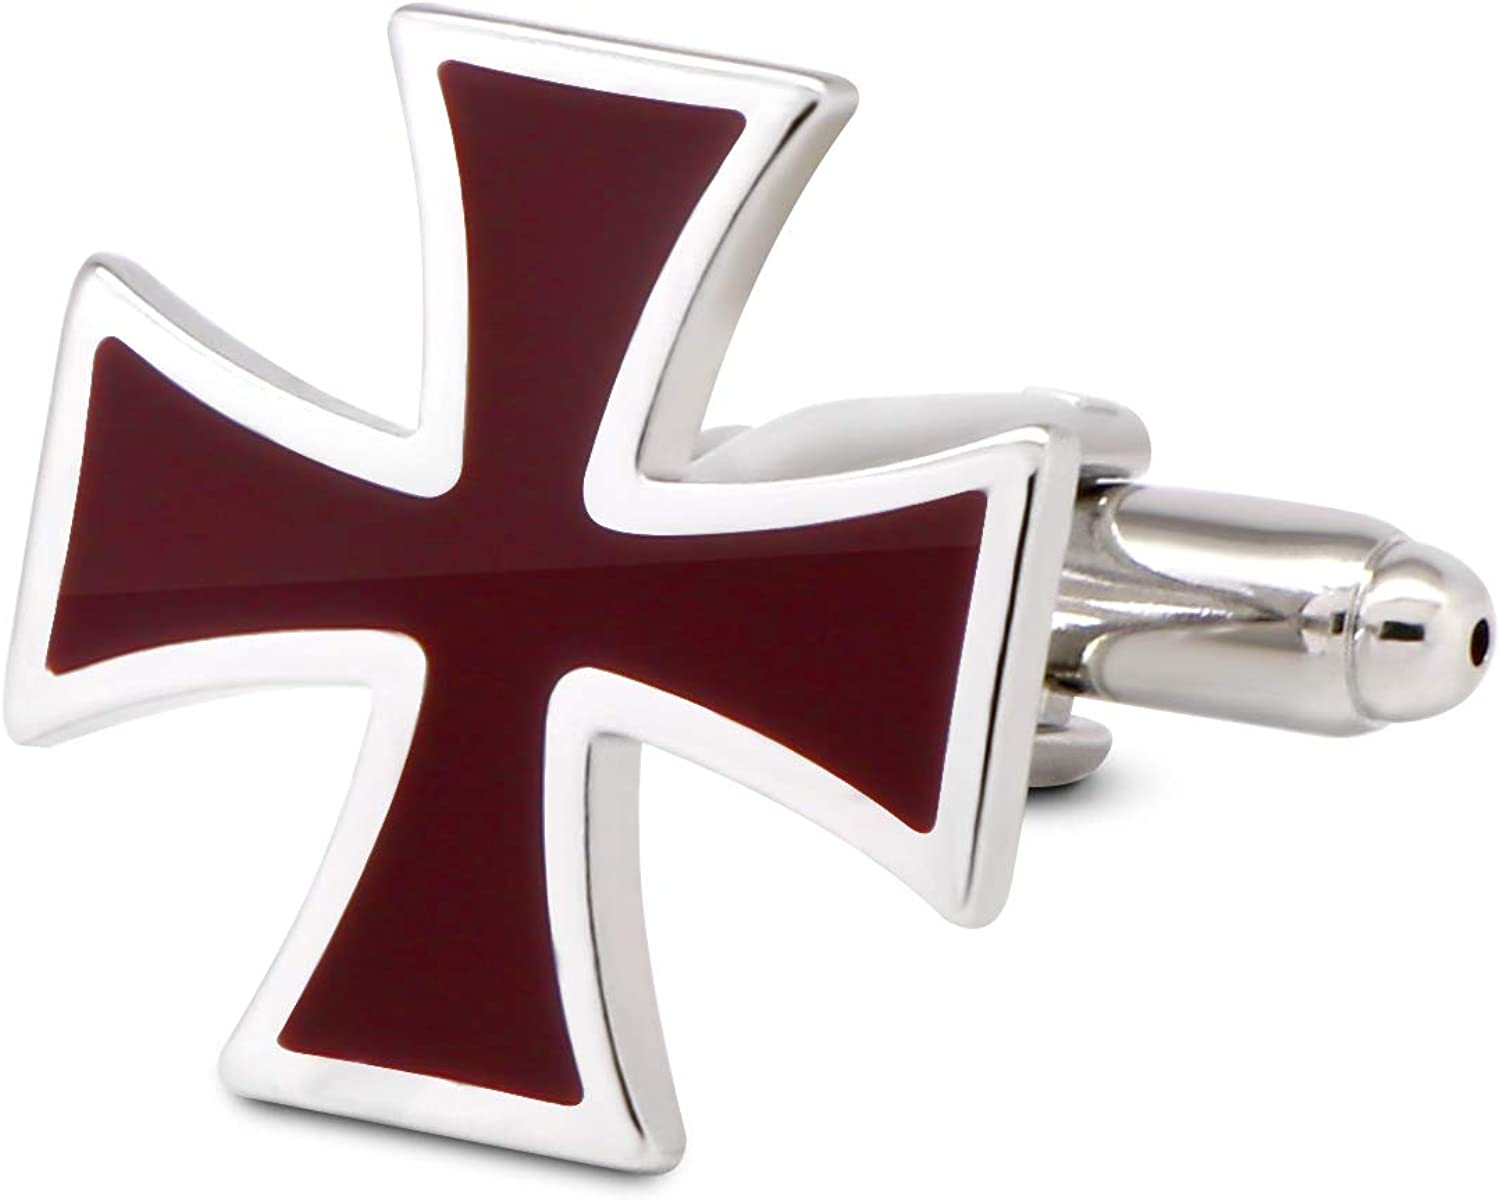 Celtic Cross Religious Cufflinks with Personalised Engraved Chrome Case